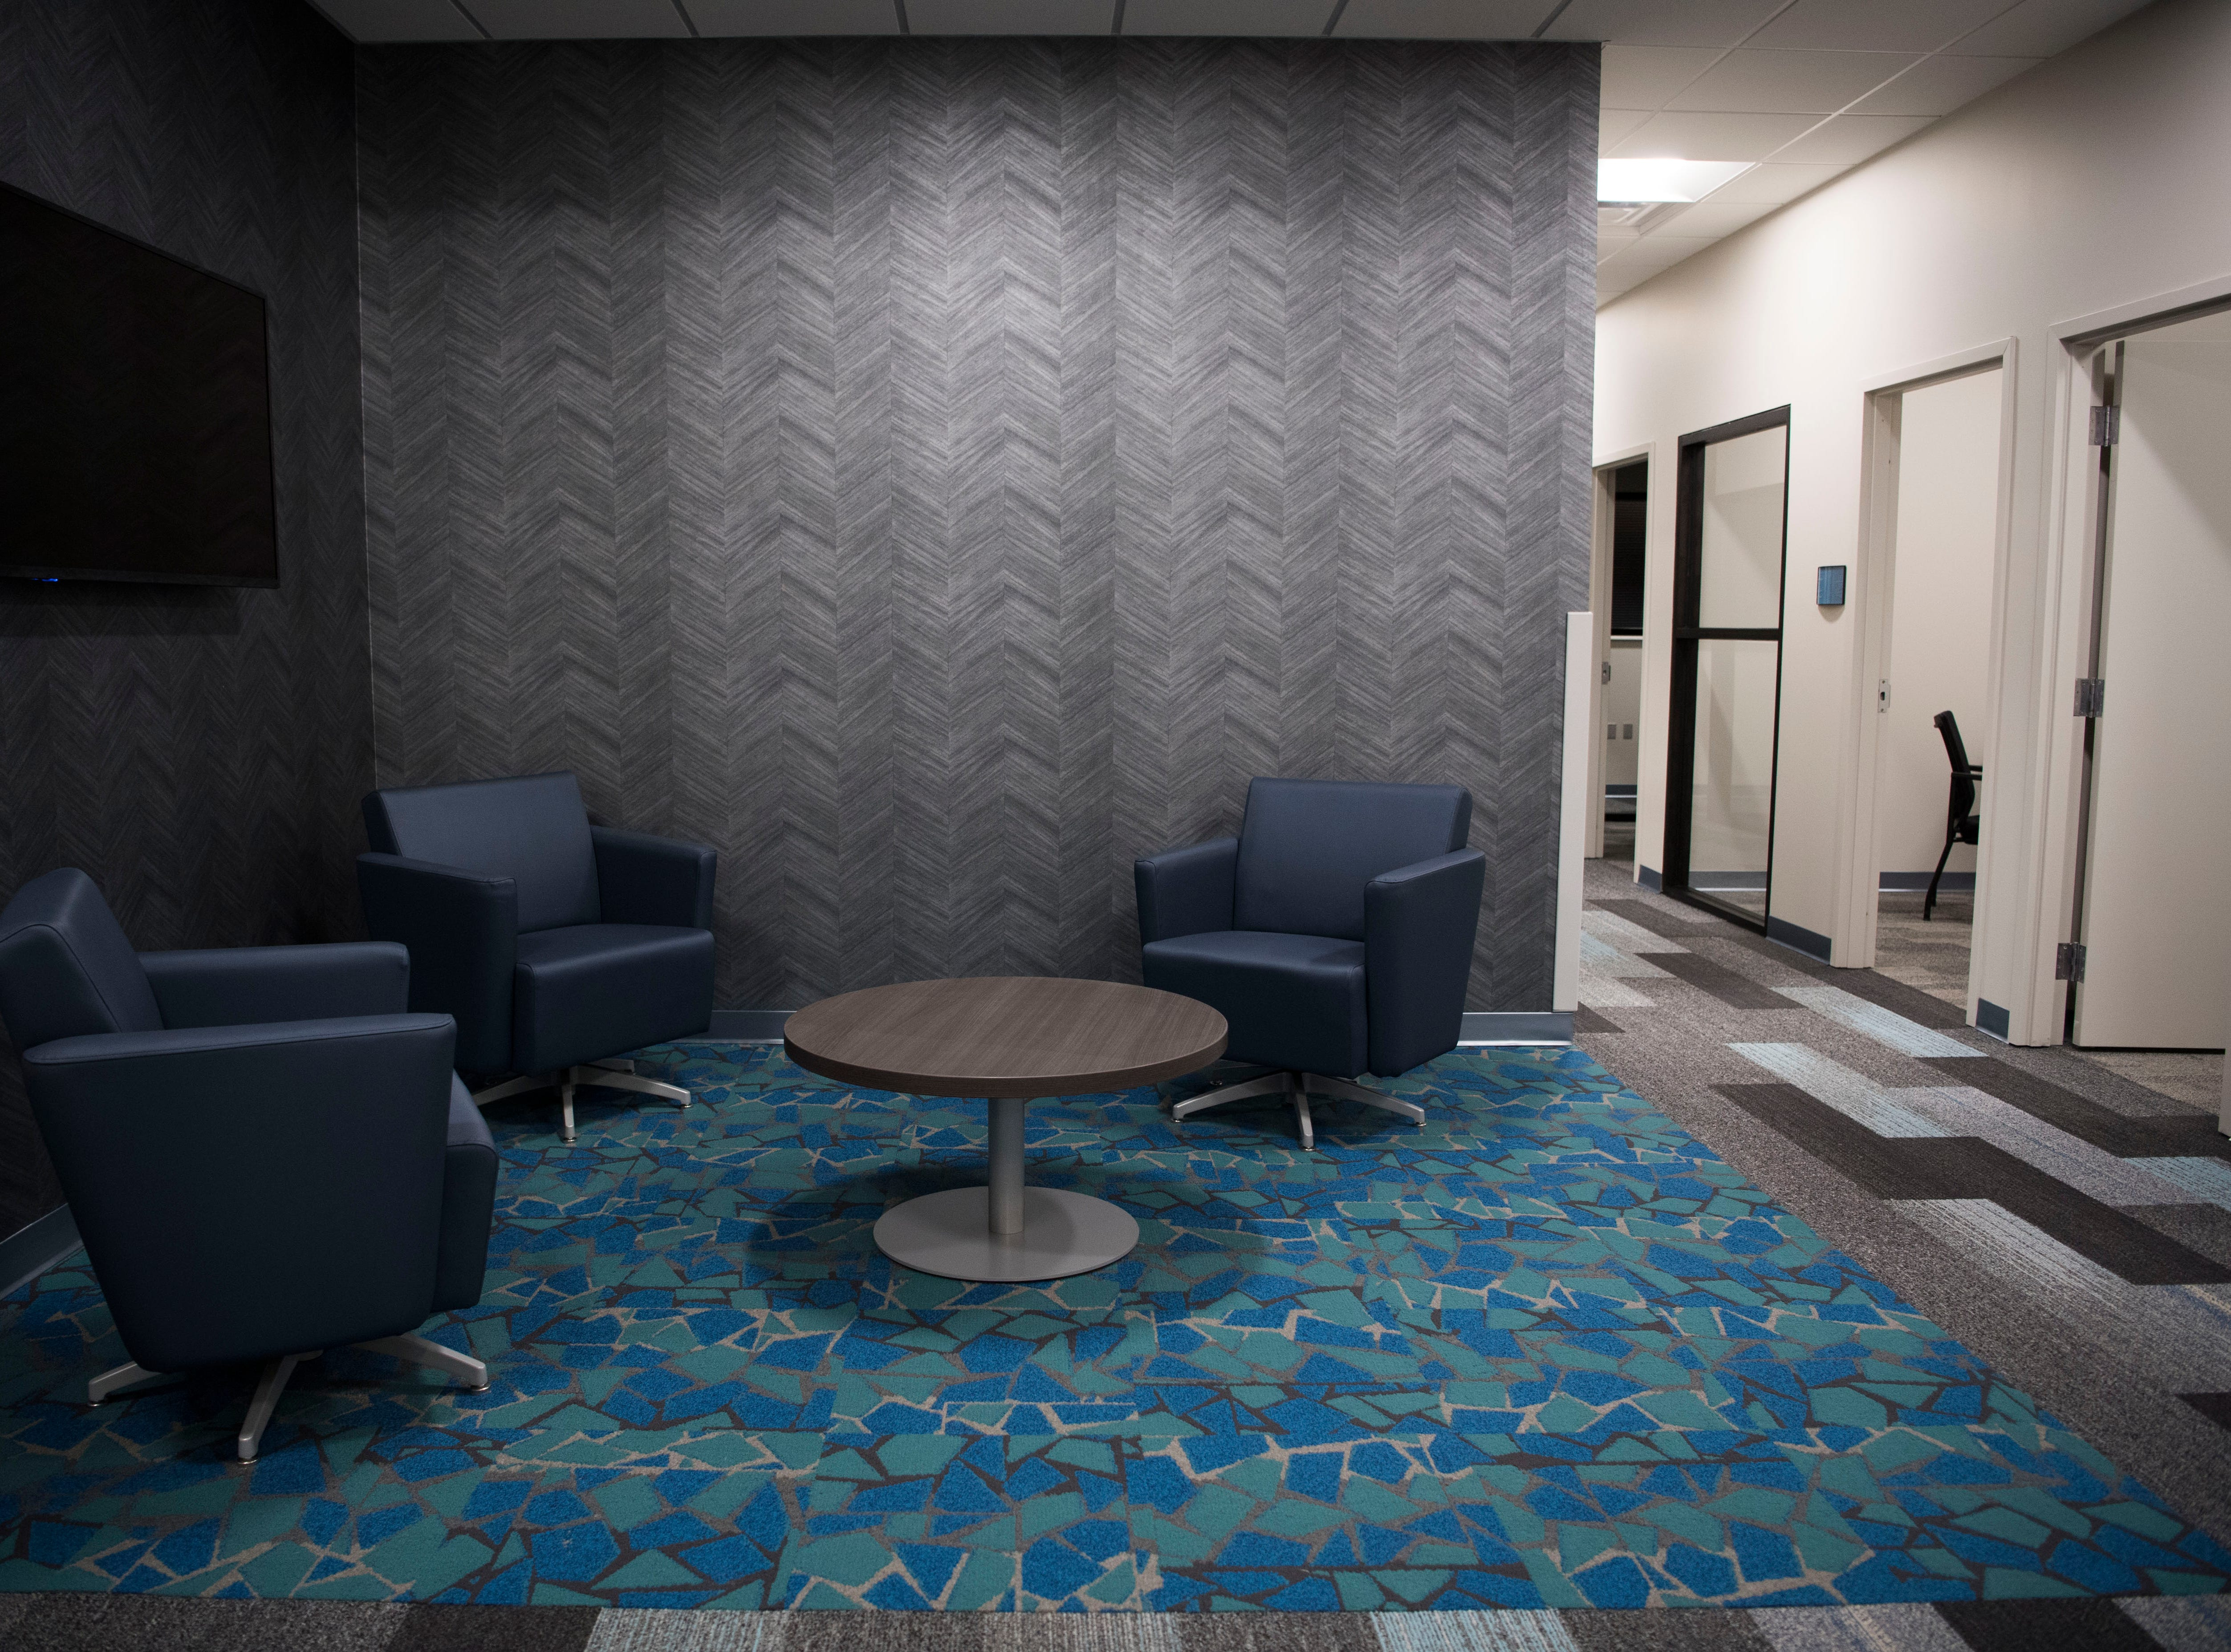 A meeting area in Ts117, a new coworking space in Oak Ridge run by brothers Rick and Ryan Chinn, Tuesday, Feb. 19, 2019.